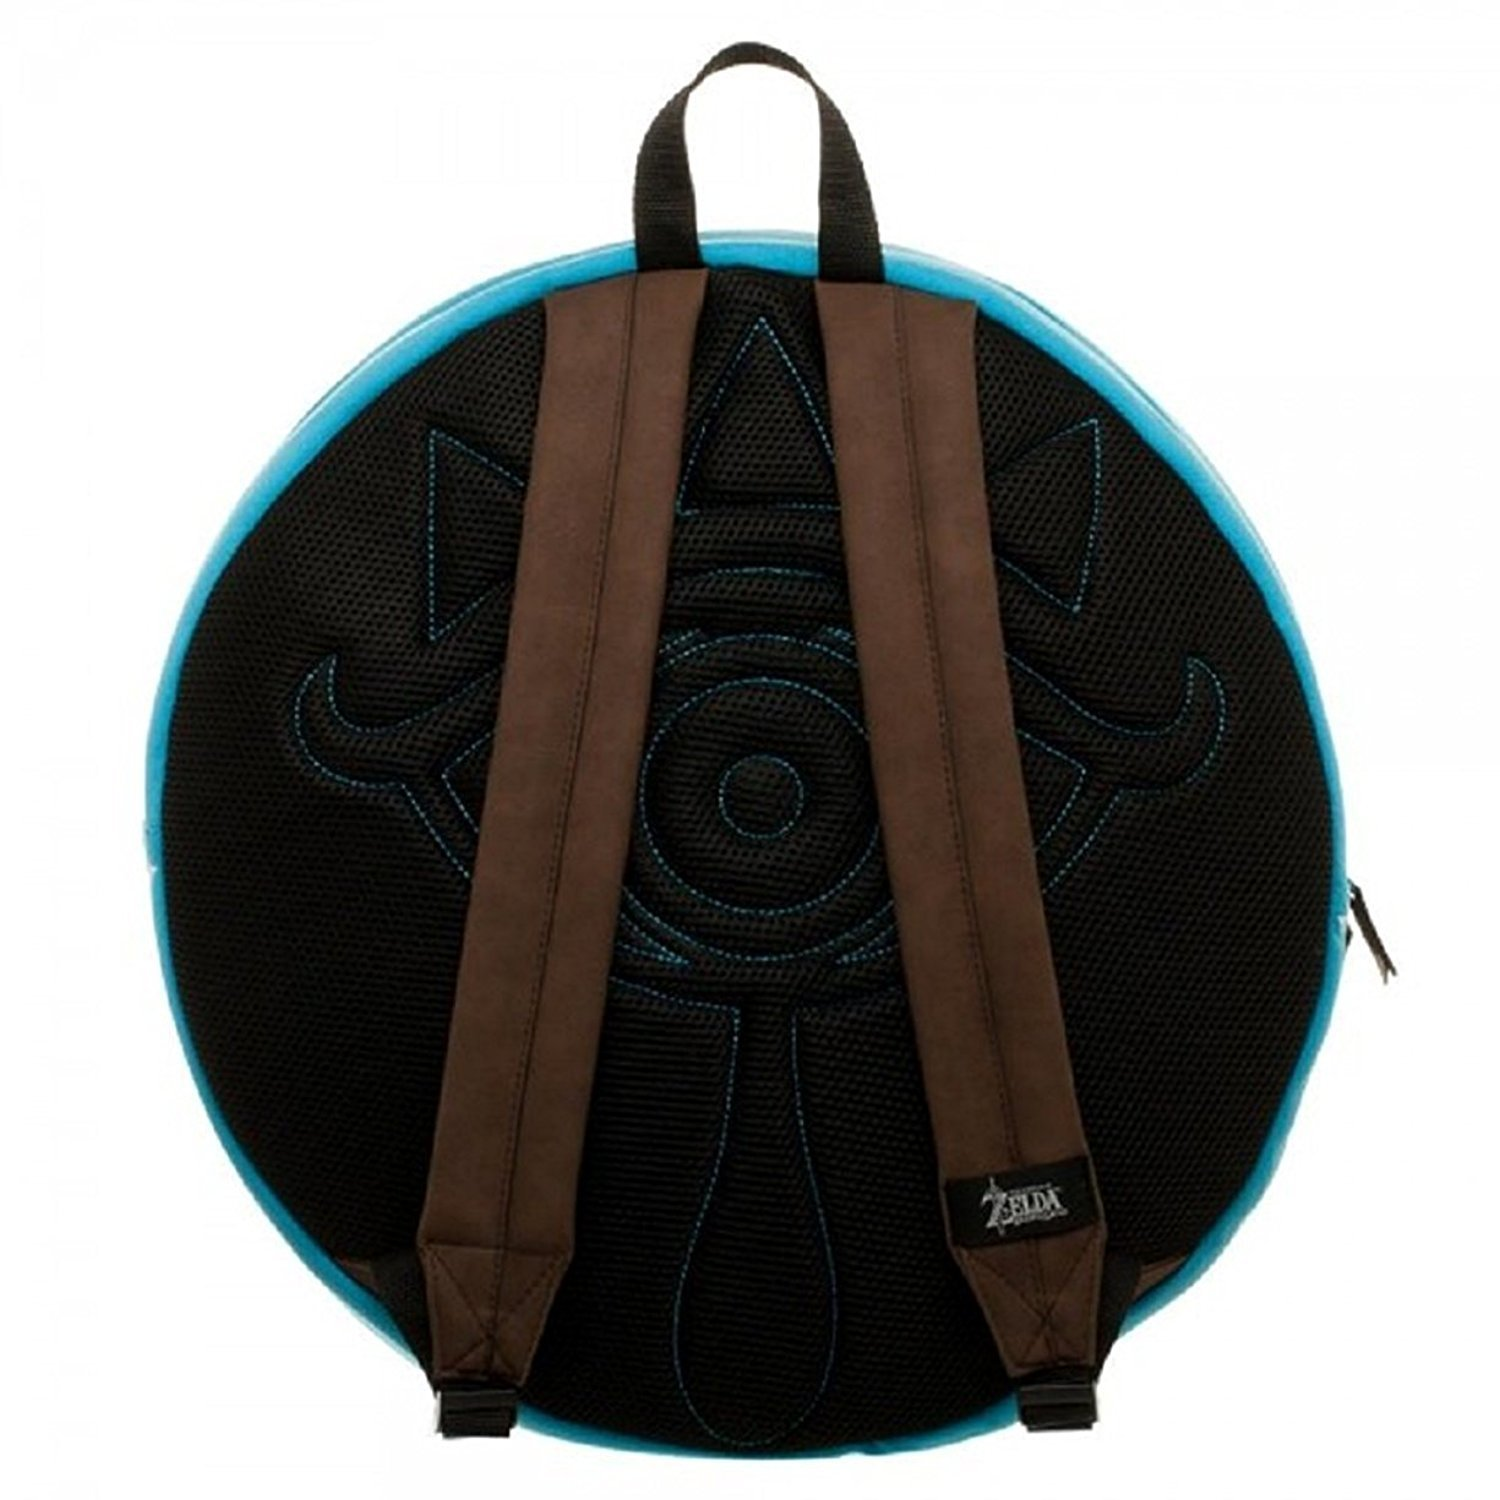 d55f8c6b9b ... Legend of Zelda  Breath of the Wild - Shield Backpack image